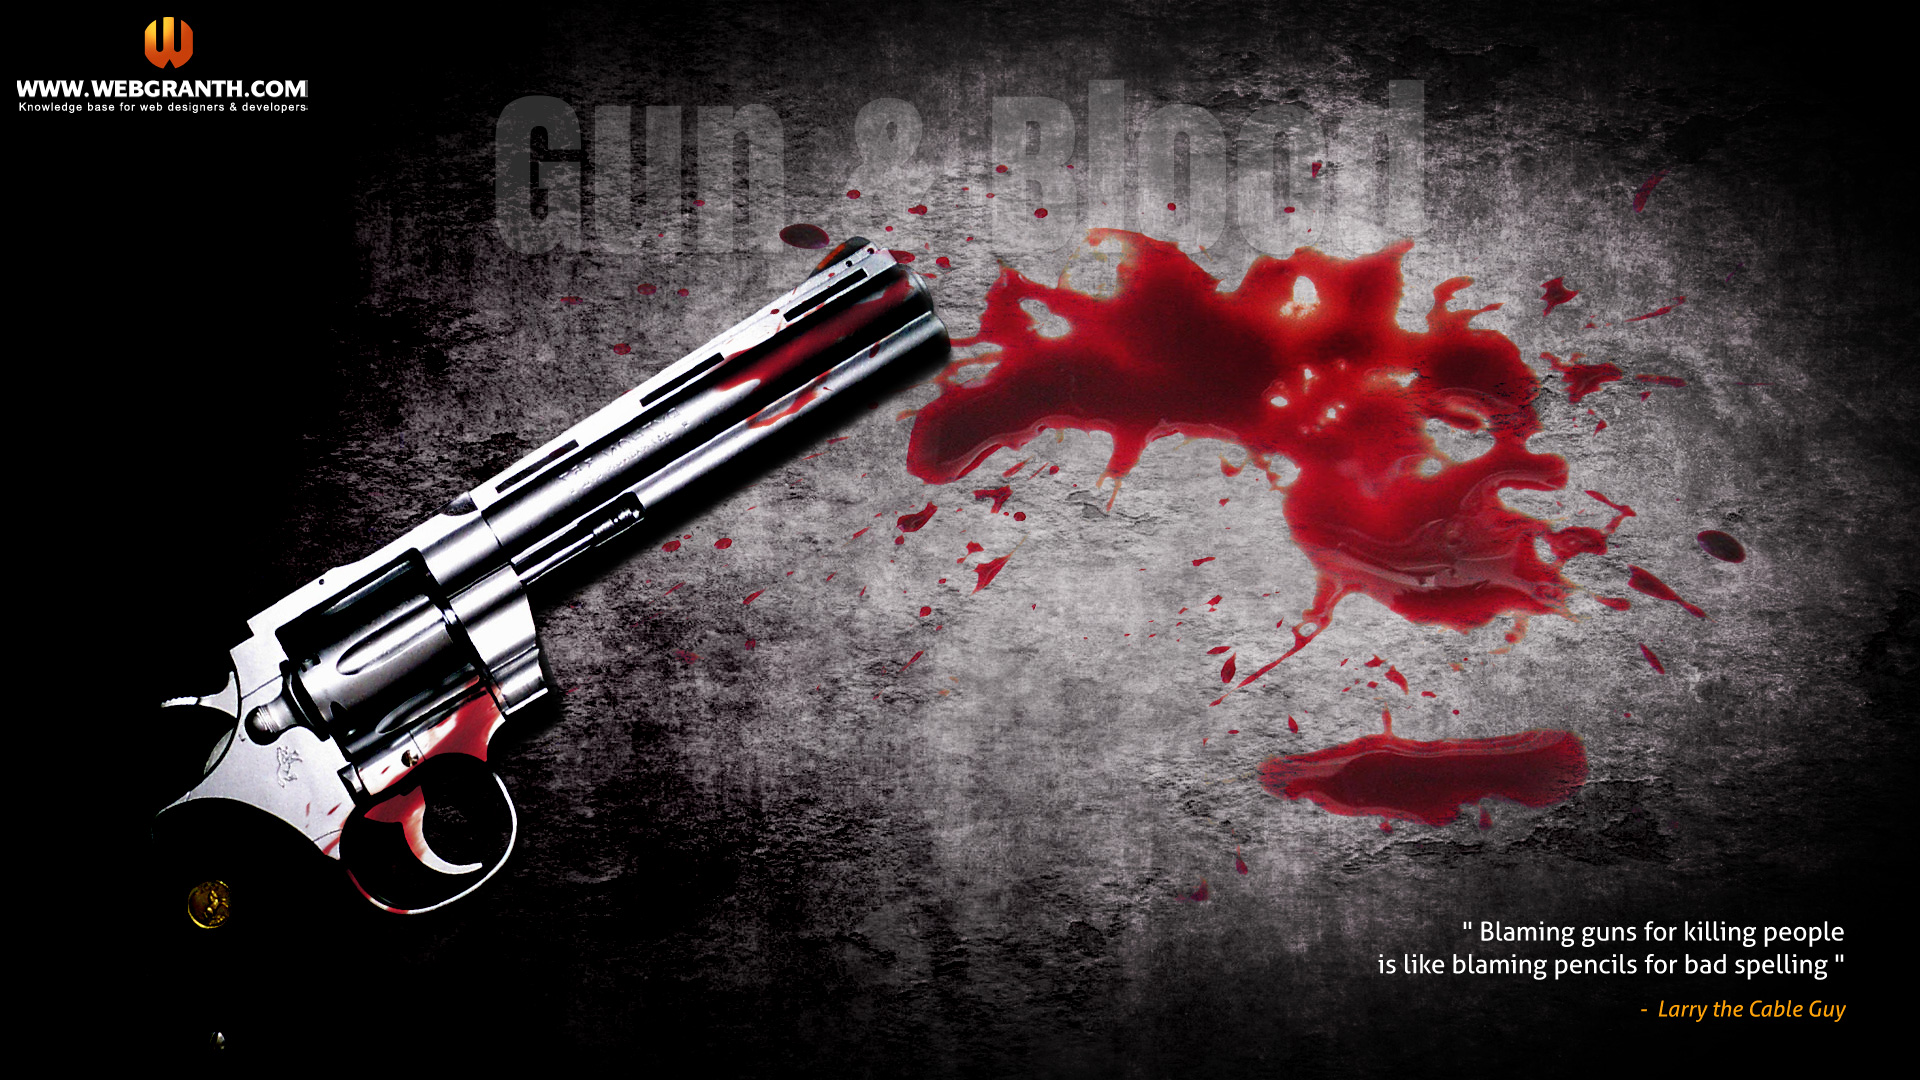 HD Guns Wallpaper Download HD Guns Weapons Wallpapers   Webgranth 1920x1080